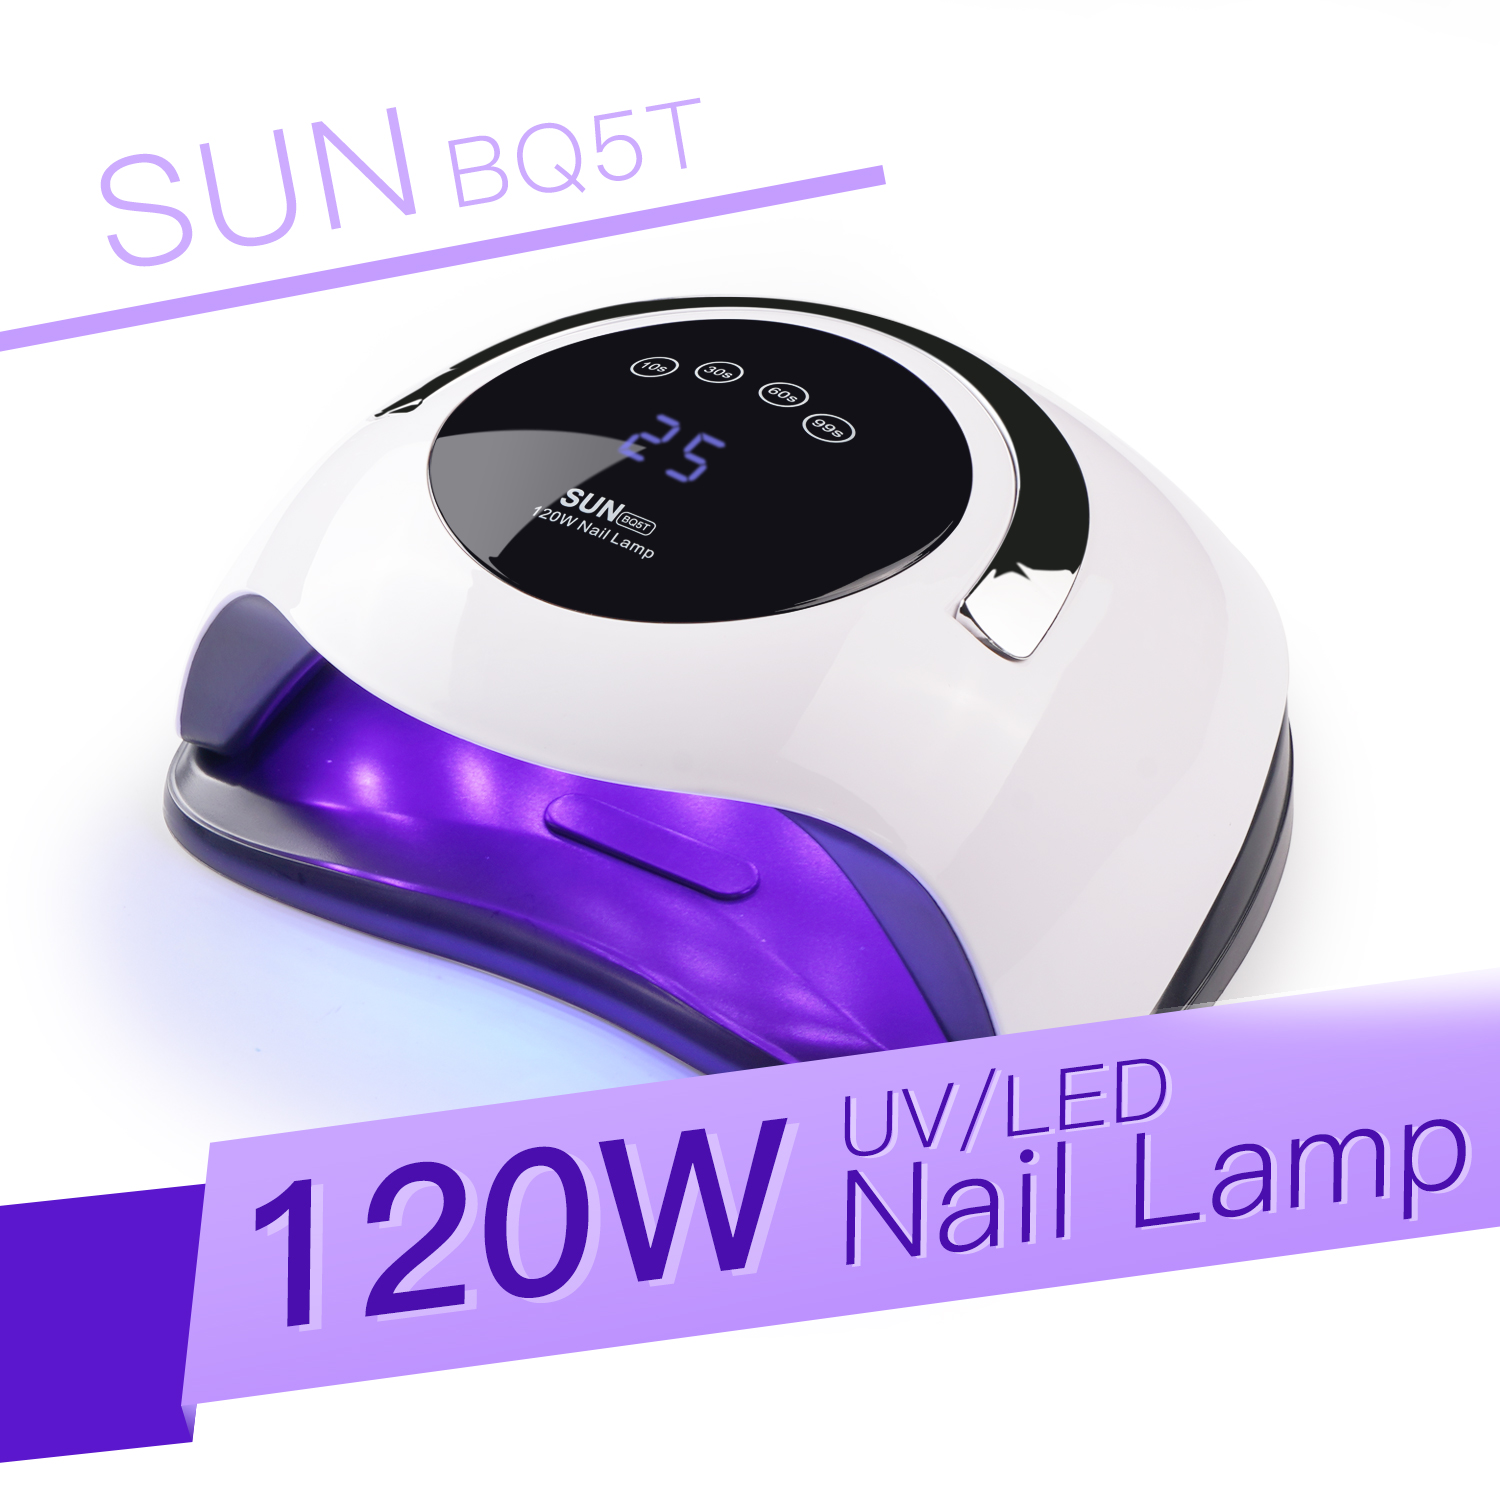 SUN BQ5T UV LED Lamp For Nails Dryer 120W Ice Lamp For Manicure Gel Nail Lamp Drying Lamp For Gel Varnish